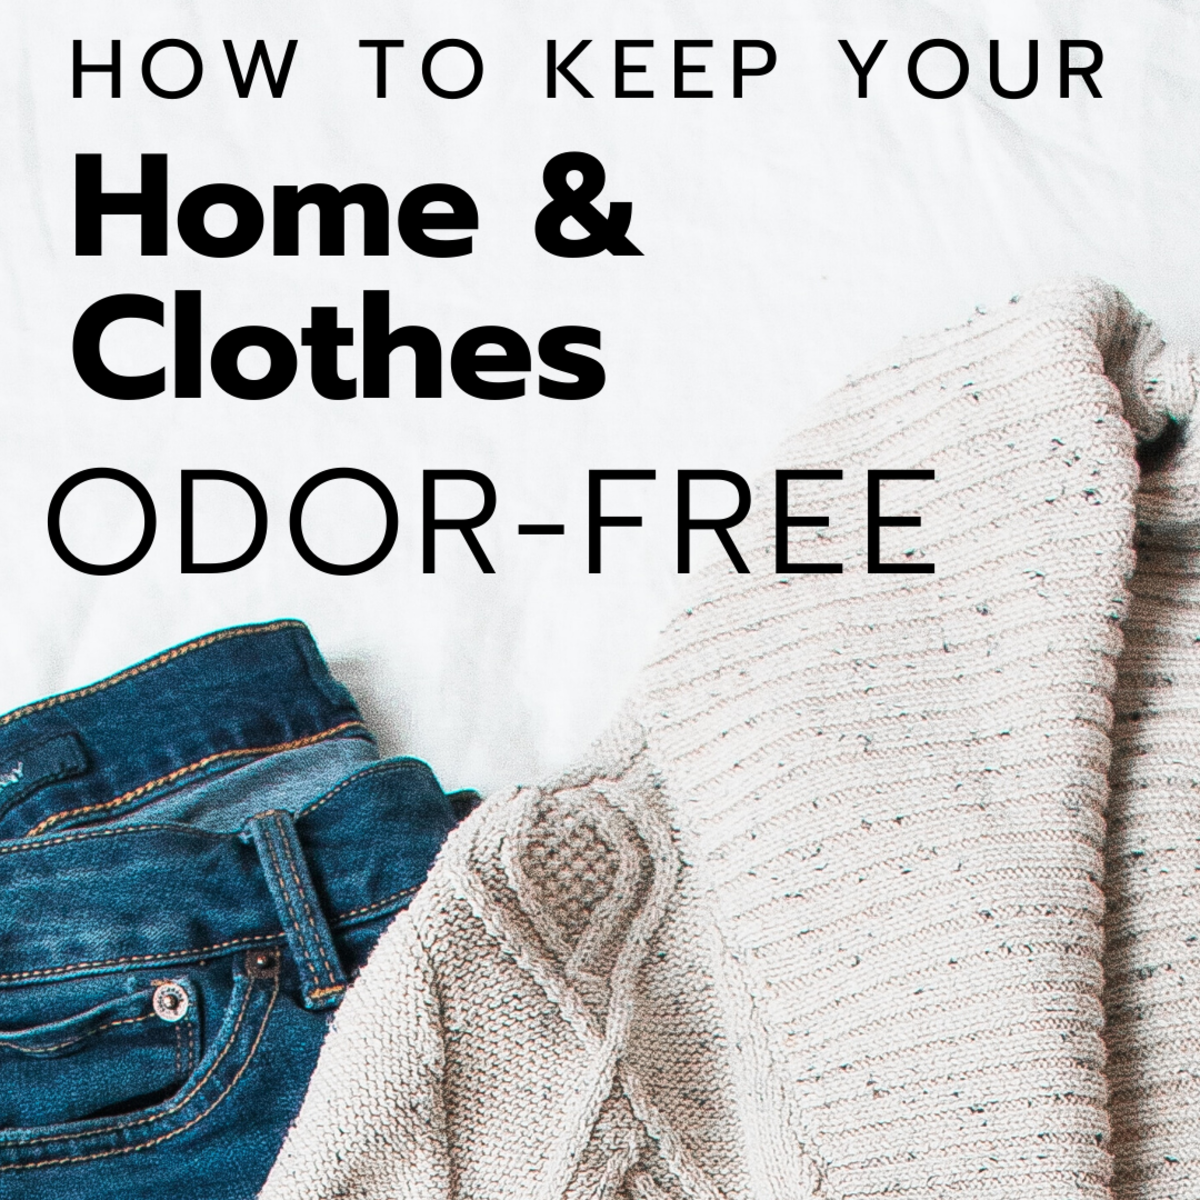 How to Keep Your Clothes and House Free of Cooking Smells